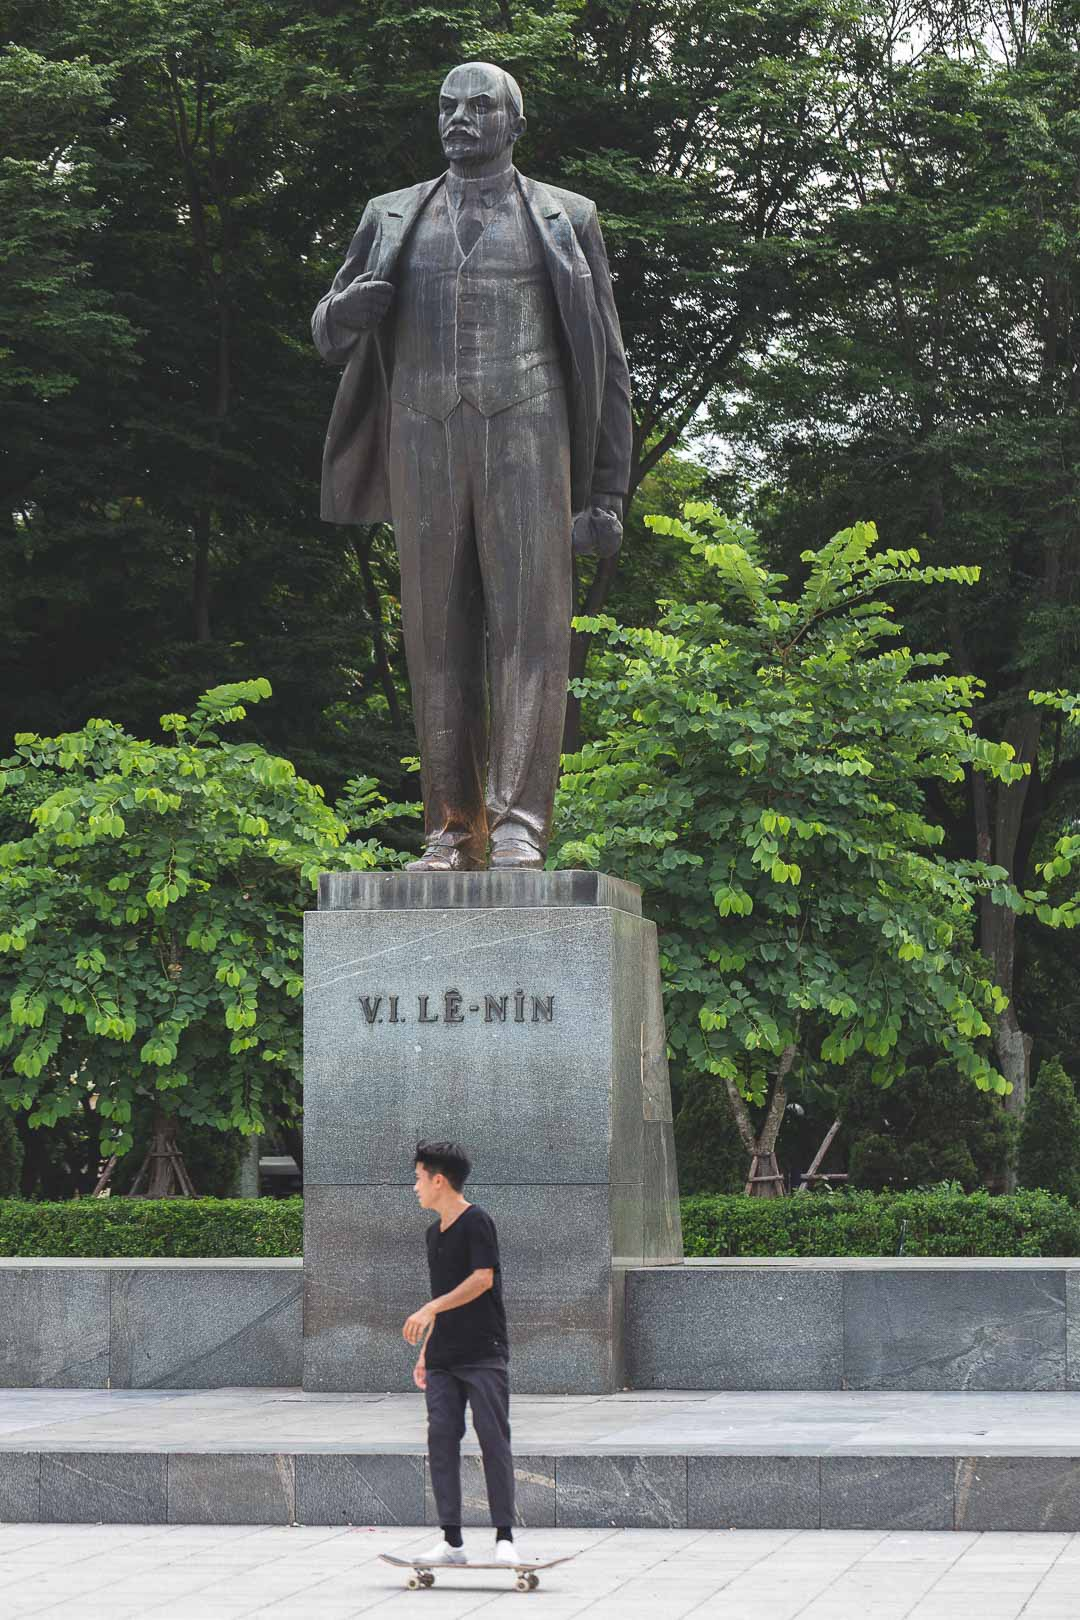 A skateboarder rides past the Lenin statue in Hanoi, Vietnam